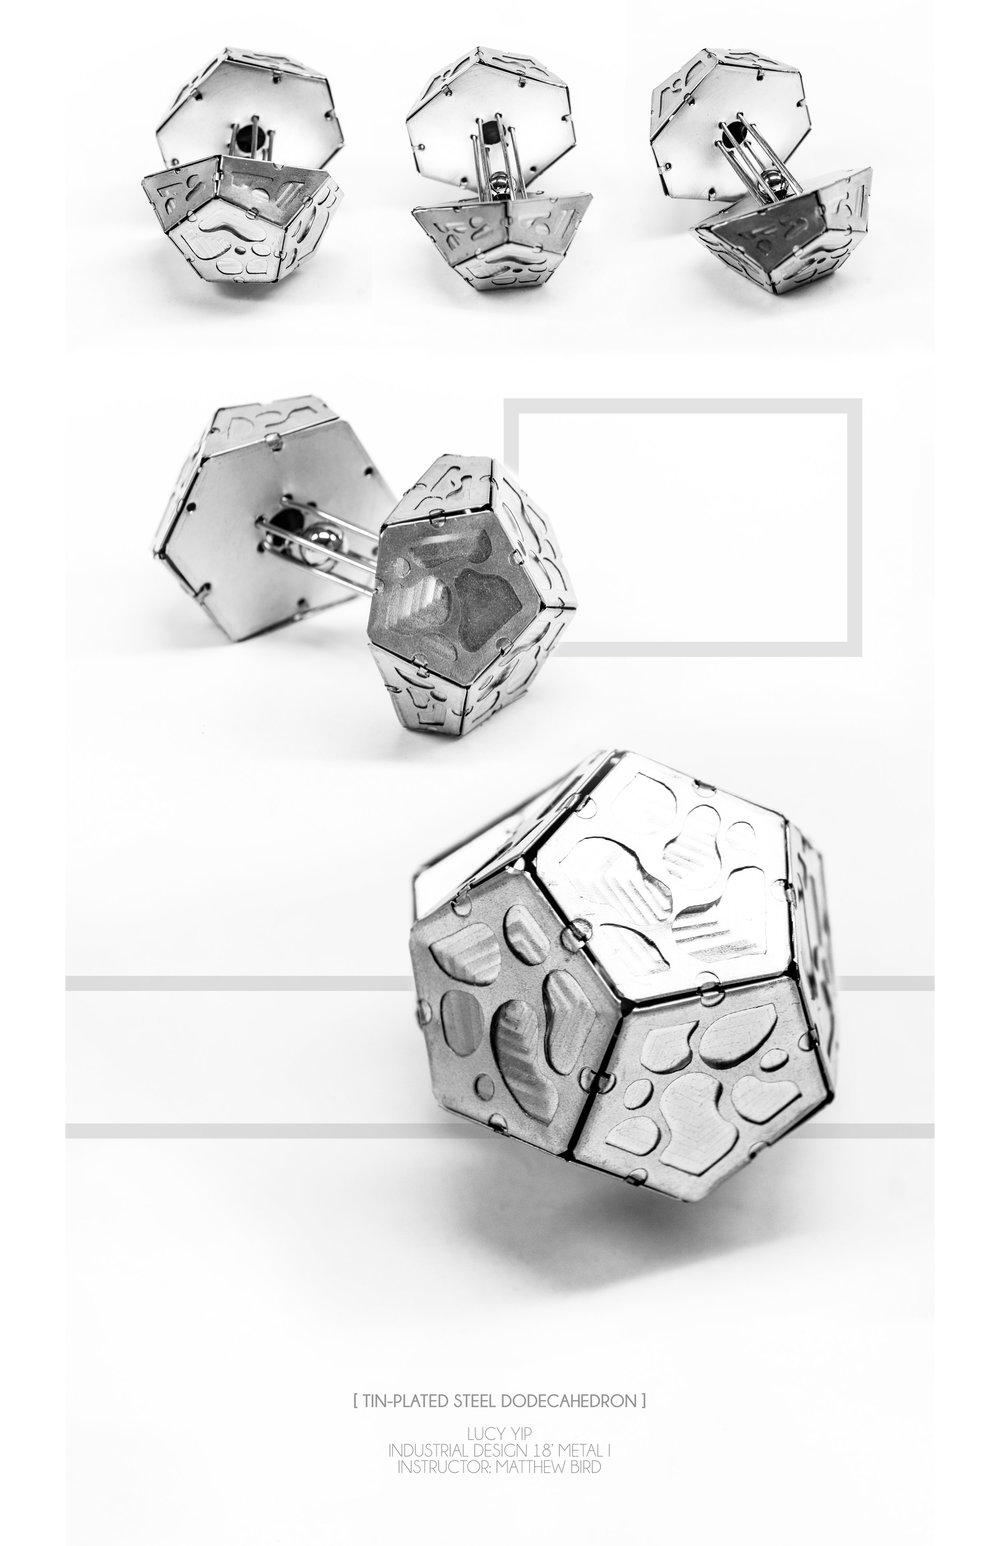 2015FA.Metal+1.Tin-Plated+Steel+Dodecahedron.Yip_Lucy.jpg